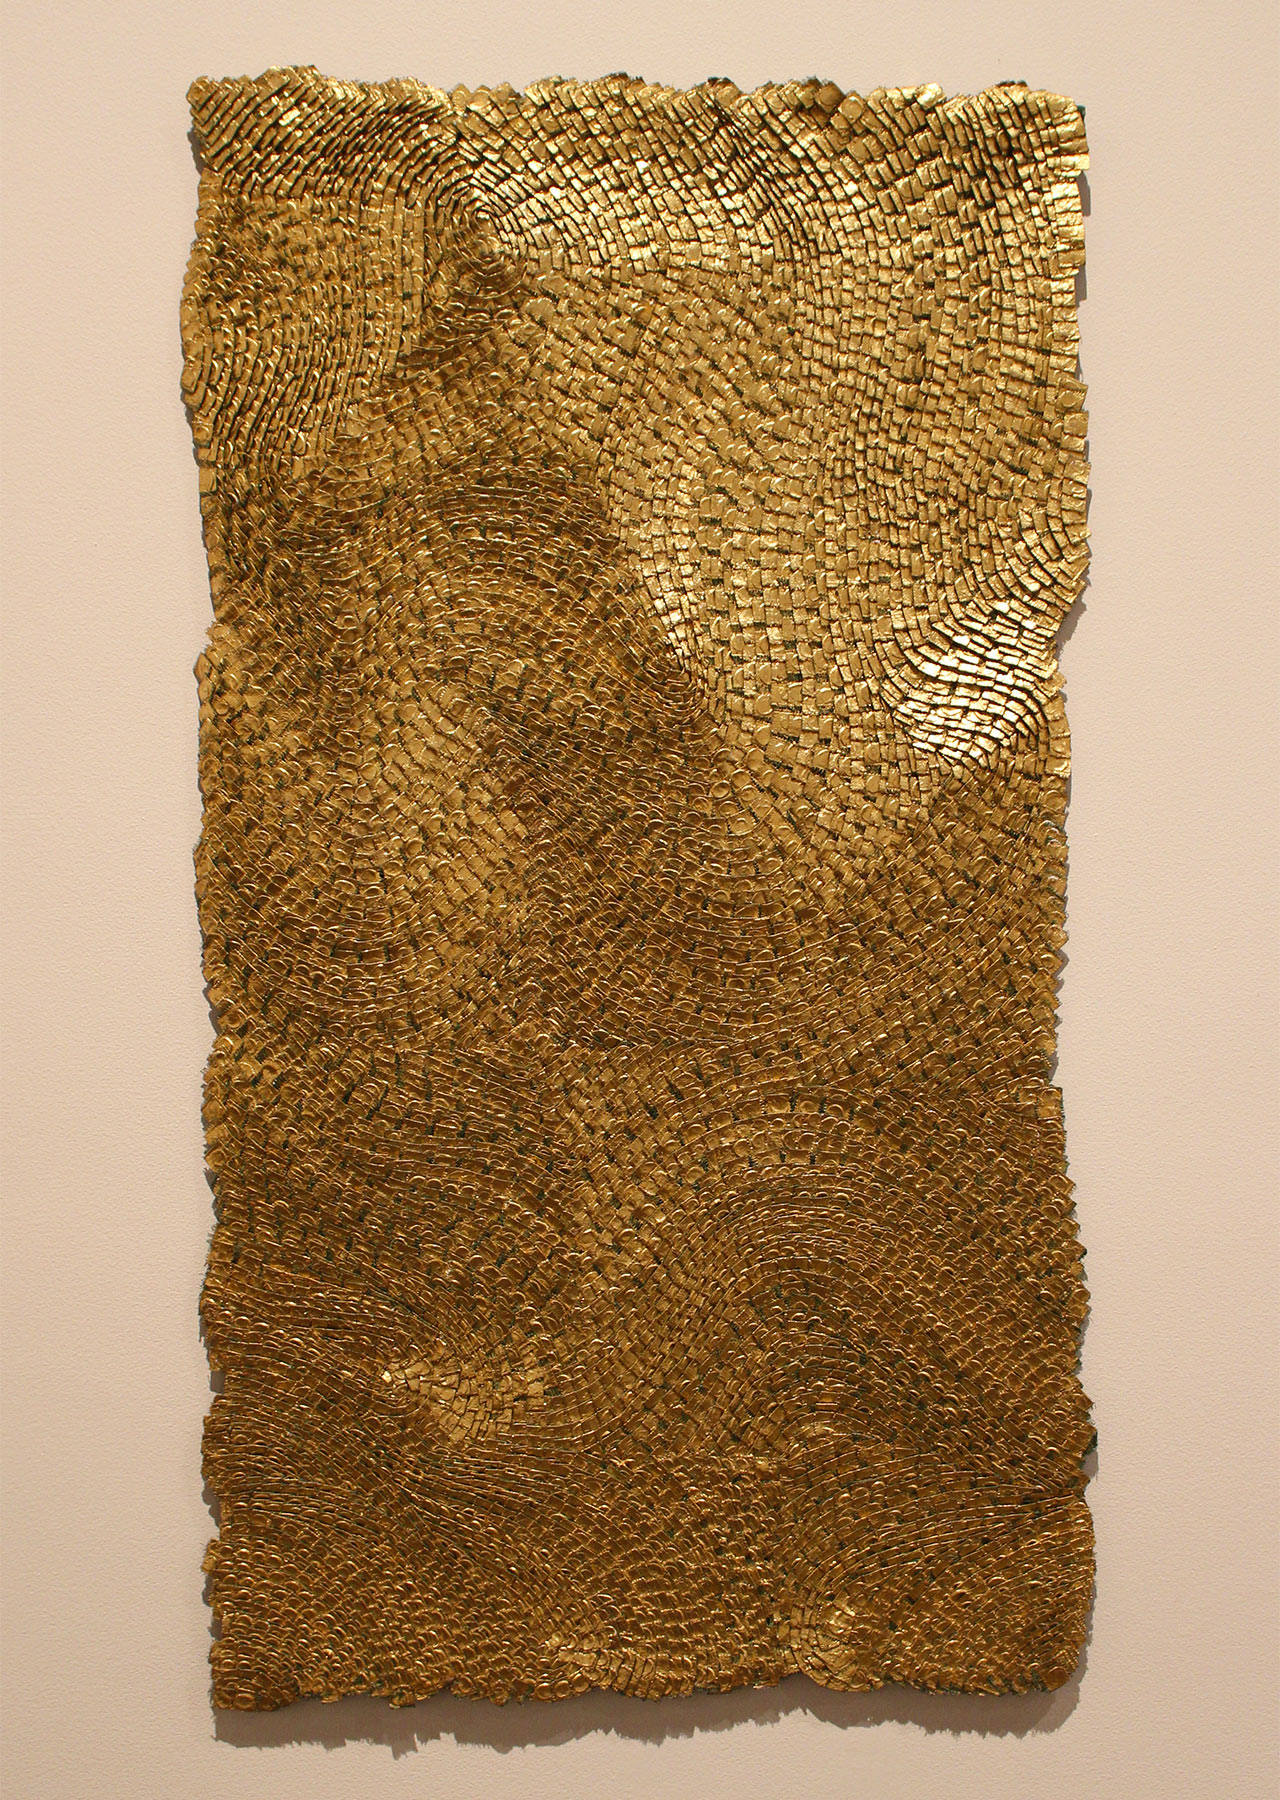 """Olga de Amaral, """"Strata XI"""" (2008), linen, gesso acrylic, and gold leaf, from 'GOLD' at the Neuberger Museum of Art"""